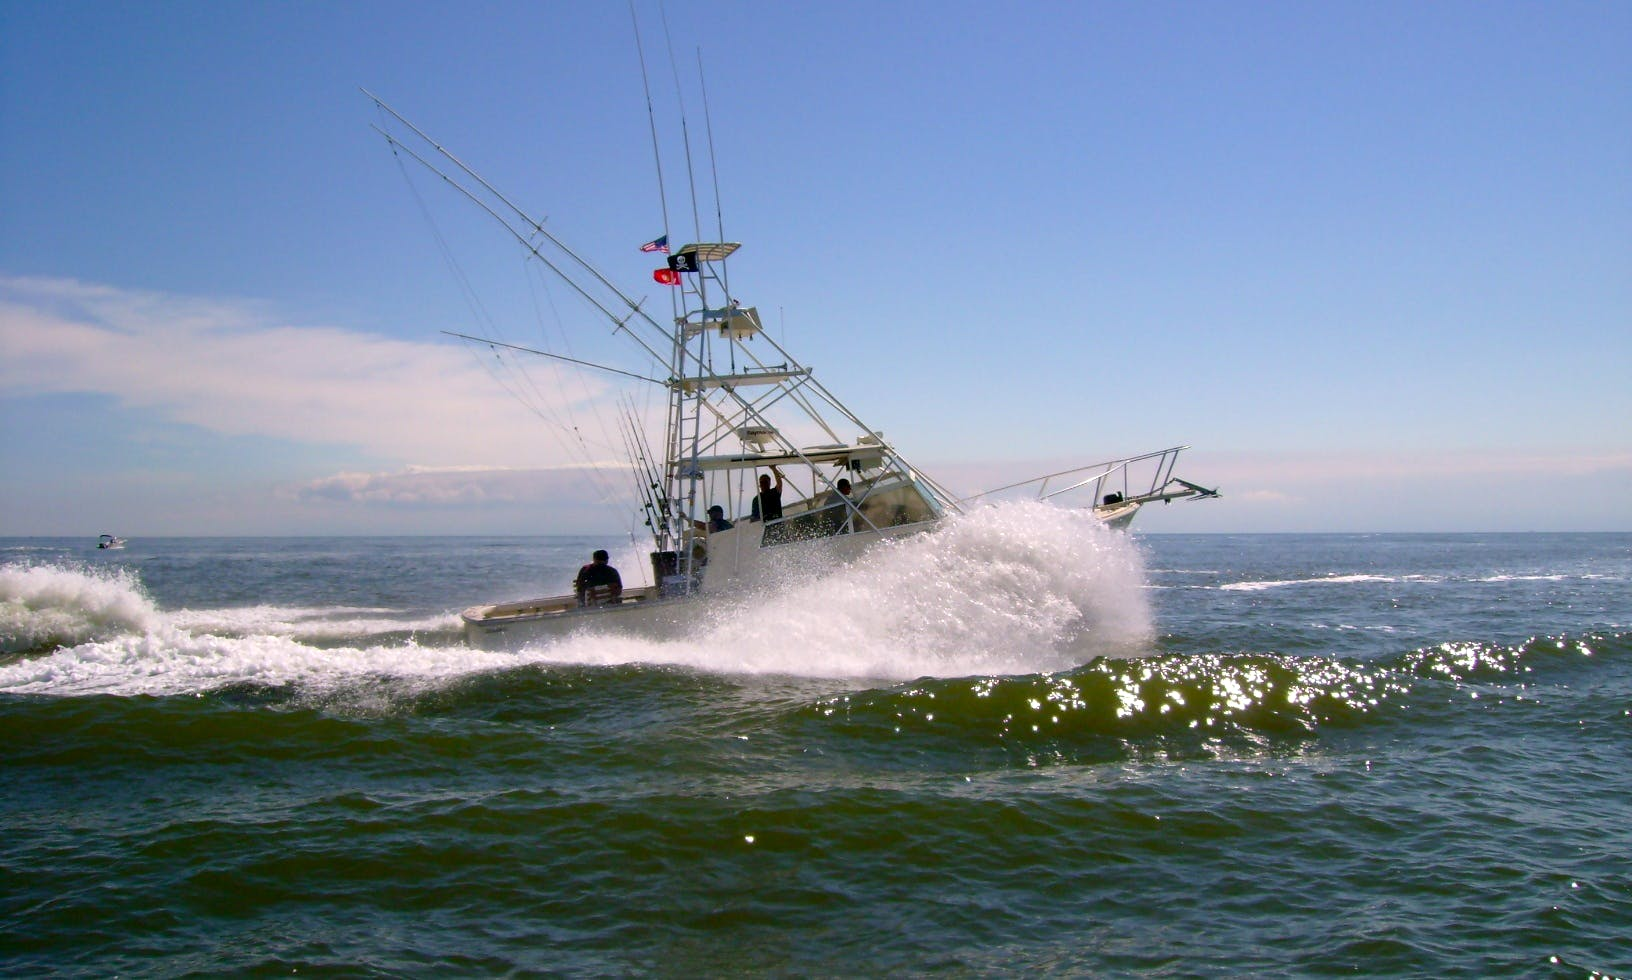 Fishing Charter Trips for 6 Person in Cape May, New Jersey